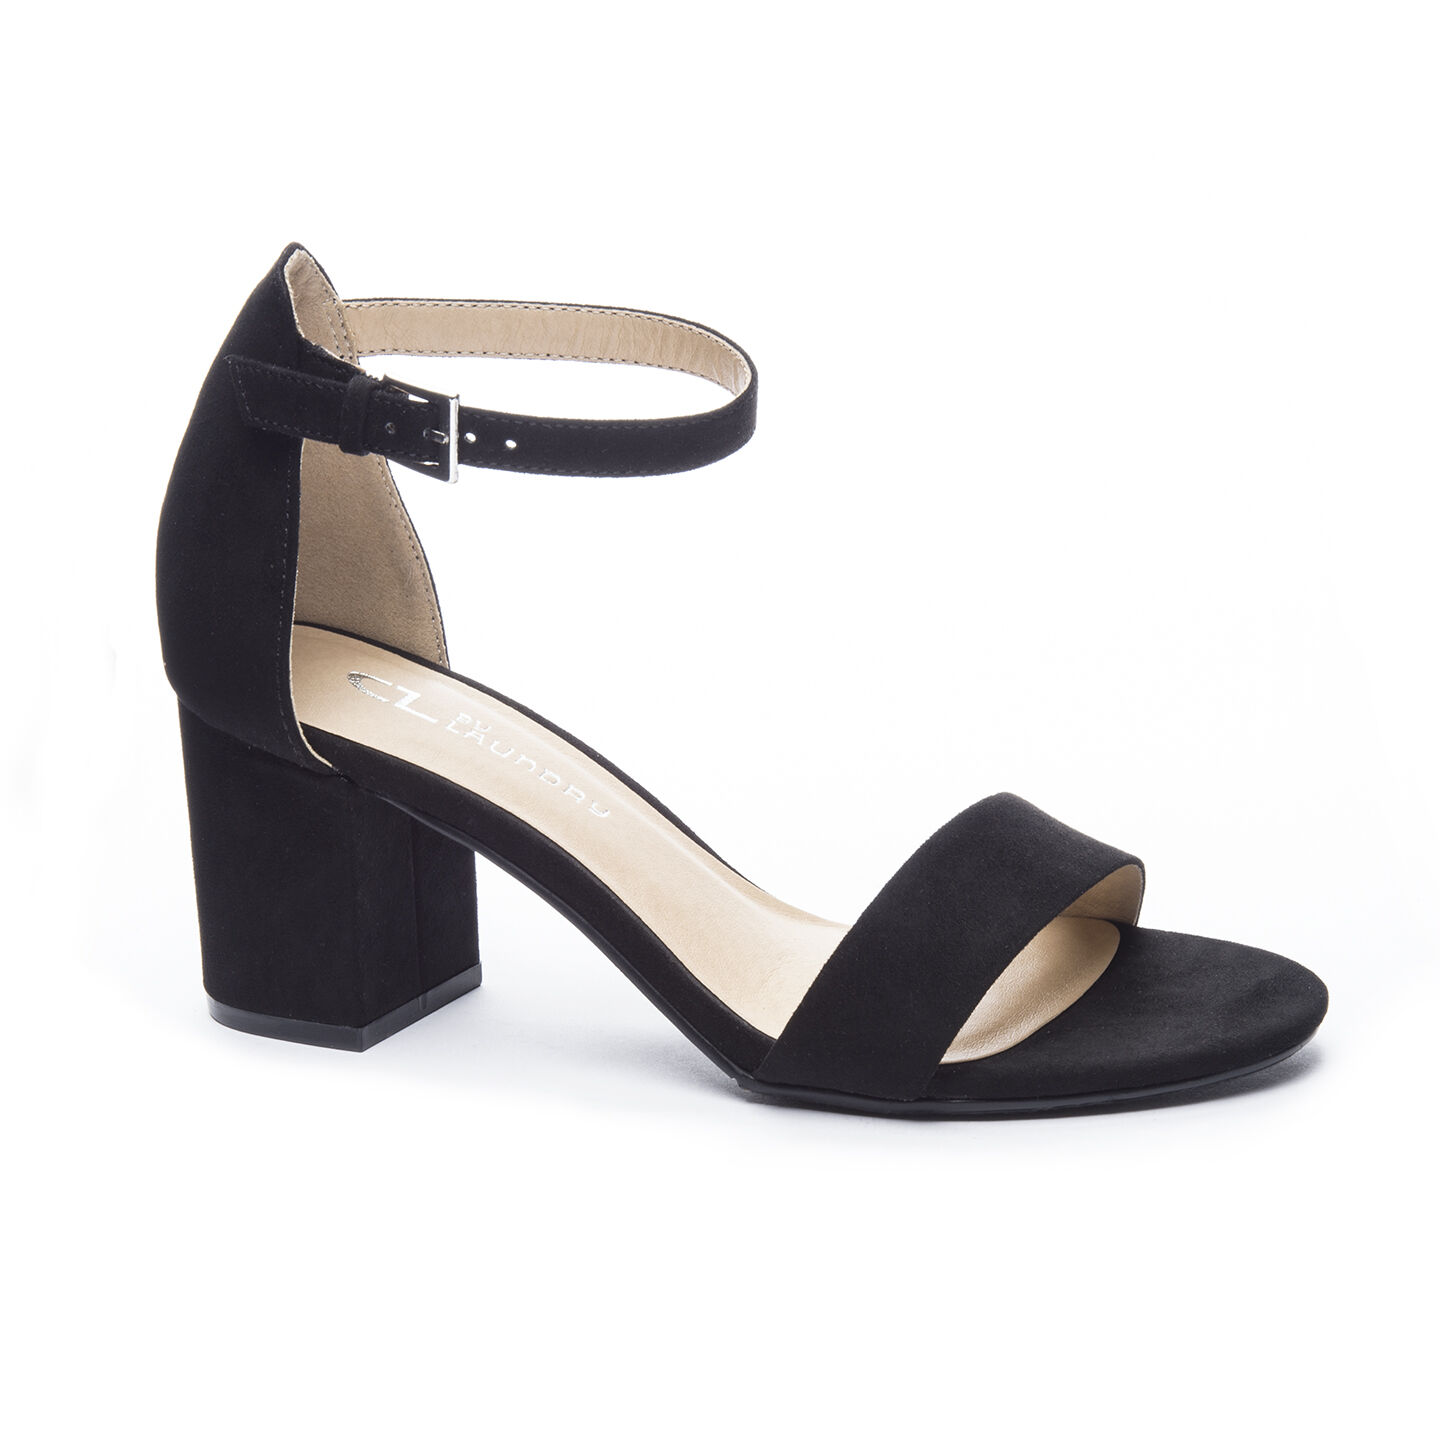 Chinese Laundry CL Jessie Block Heel Sandal (Women's)